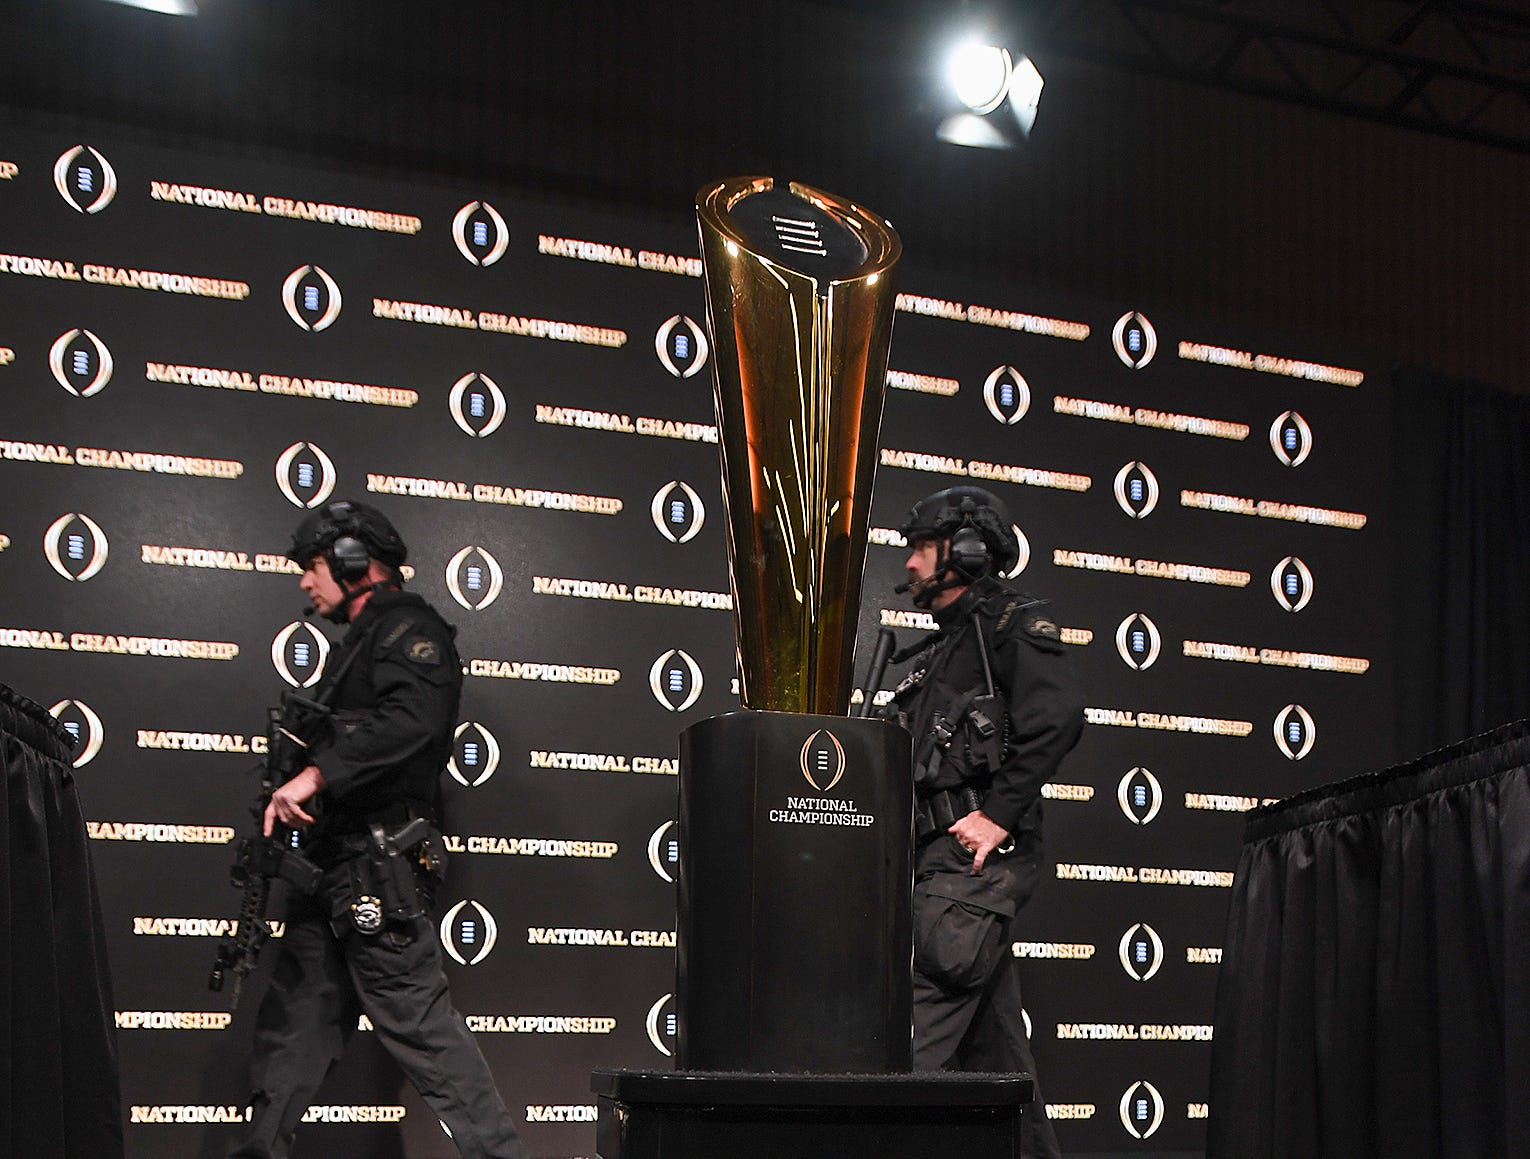 San Jose police walk by the championship trophy before the College Football Playoff Championship coaches press conference in San Jose, California January 6, 2019.